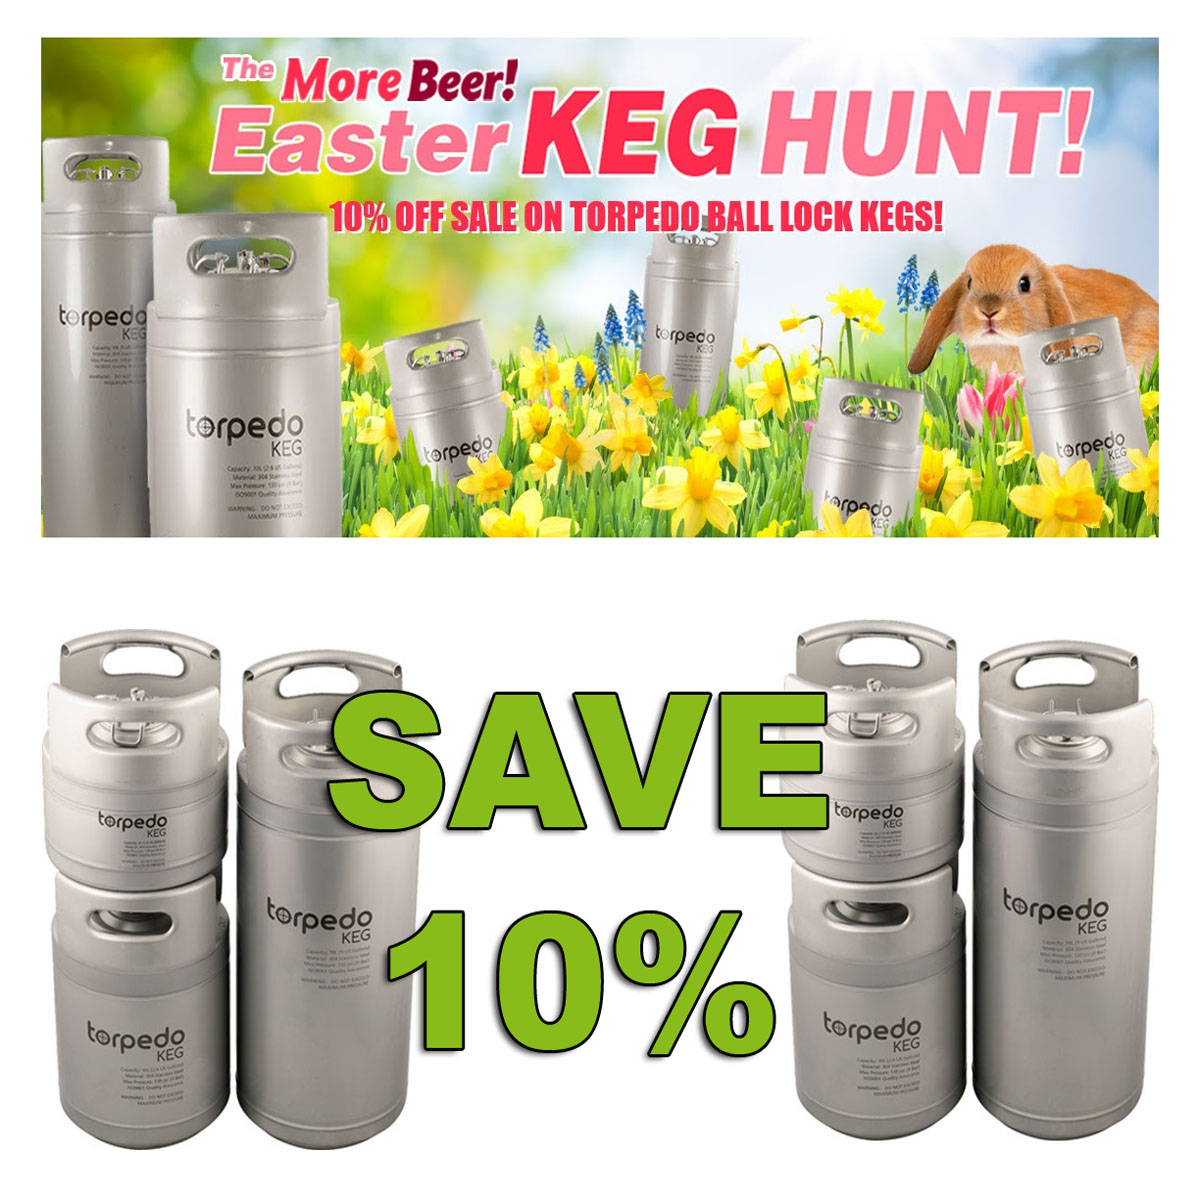 Home Brewer Promo Code for Save 10% On Torpedo Kegs with this More Beer Coupon Code Coupon Code